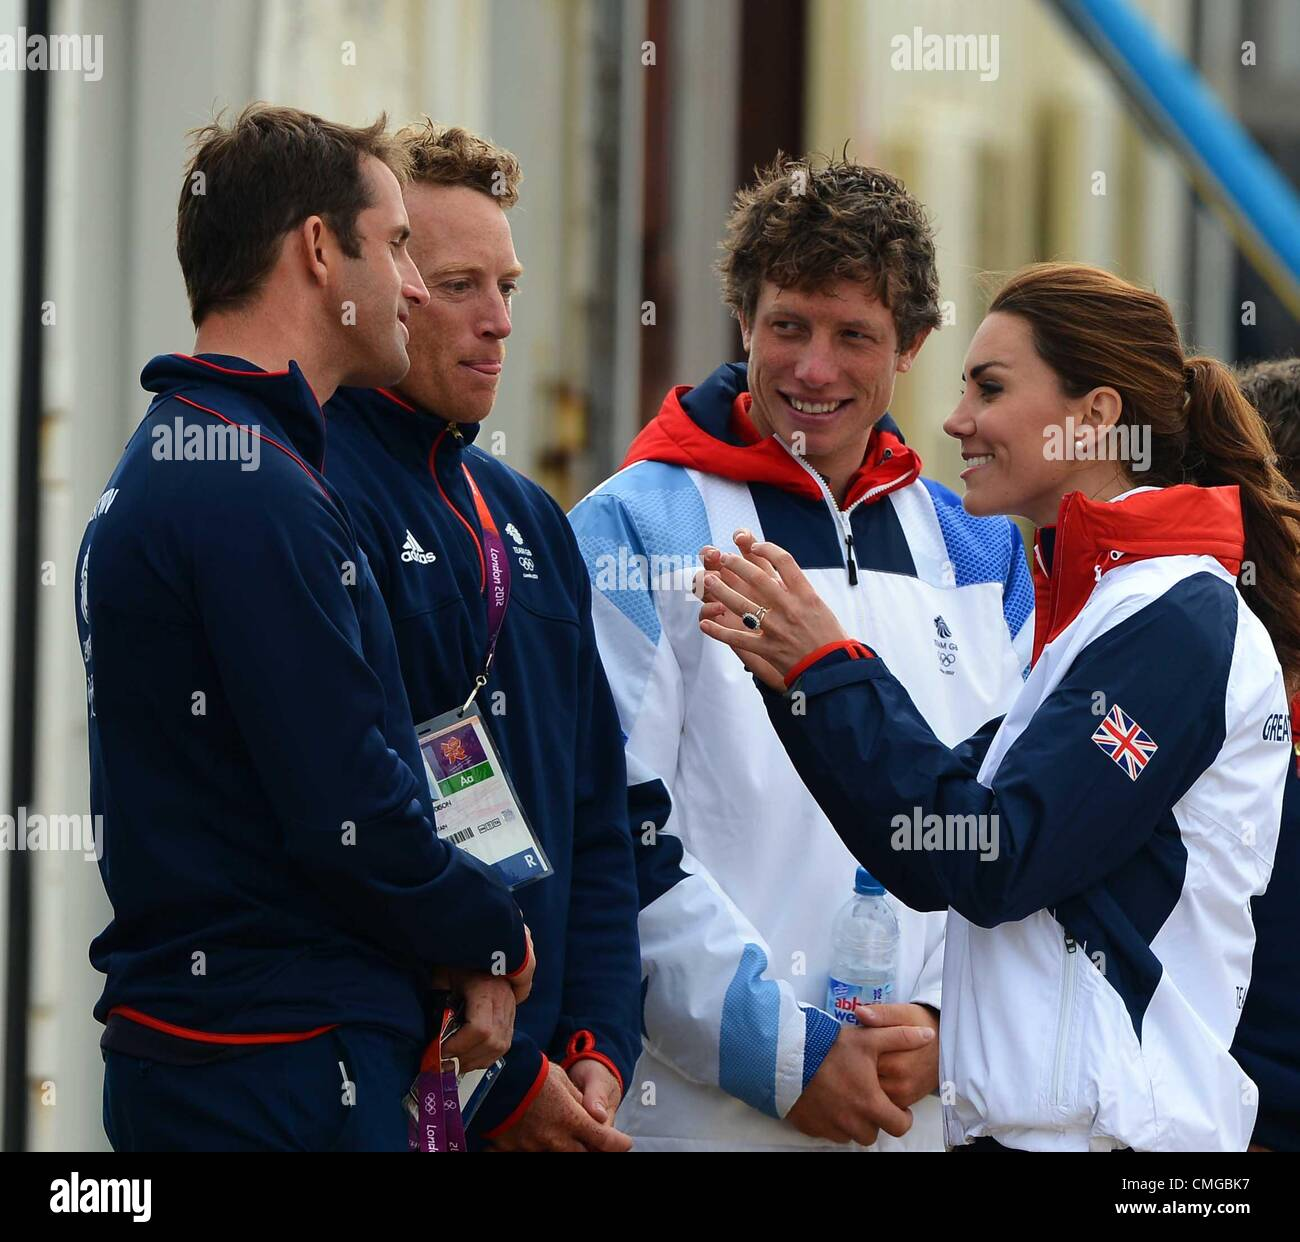 London 2012 Olympics, Kate Middleton visits the Olympic Sailing venue for the London 2012 Olympic Games Meeting - Stock Image